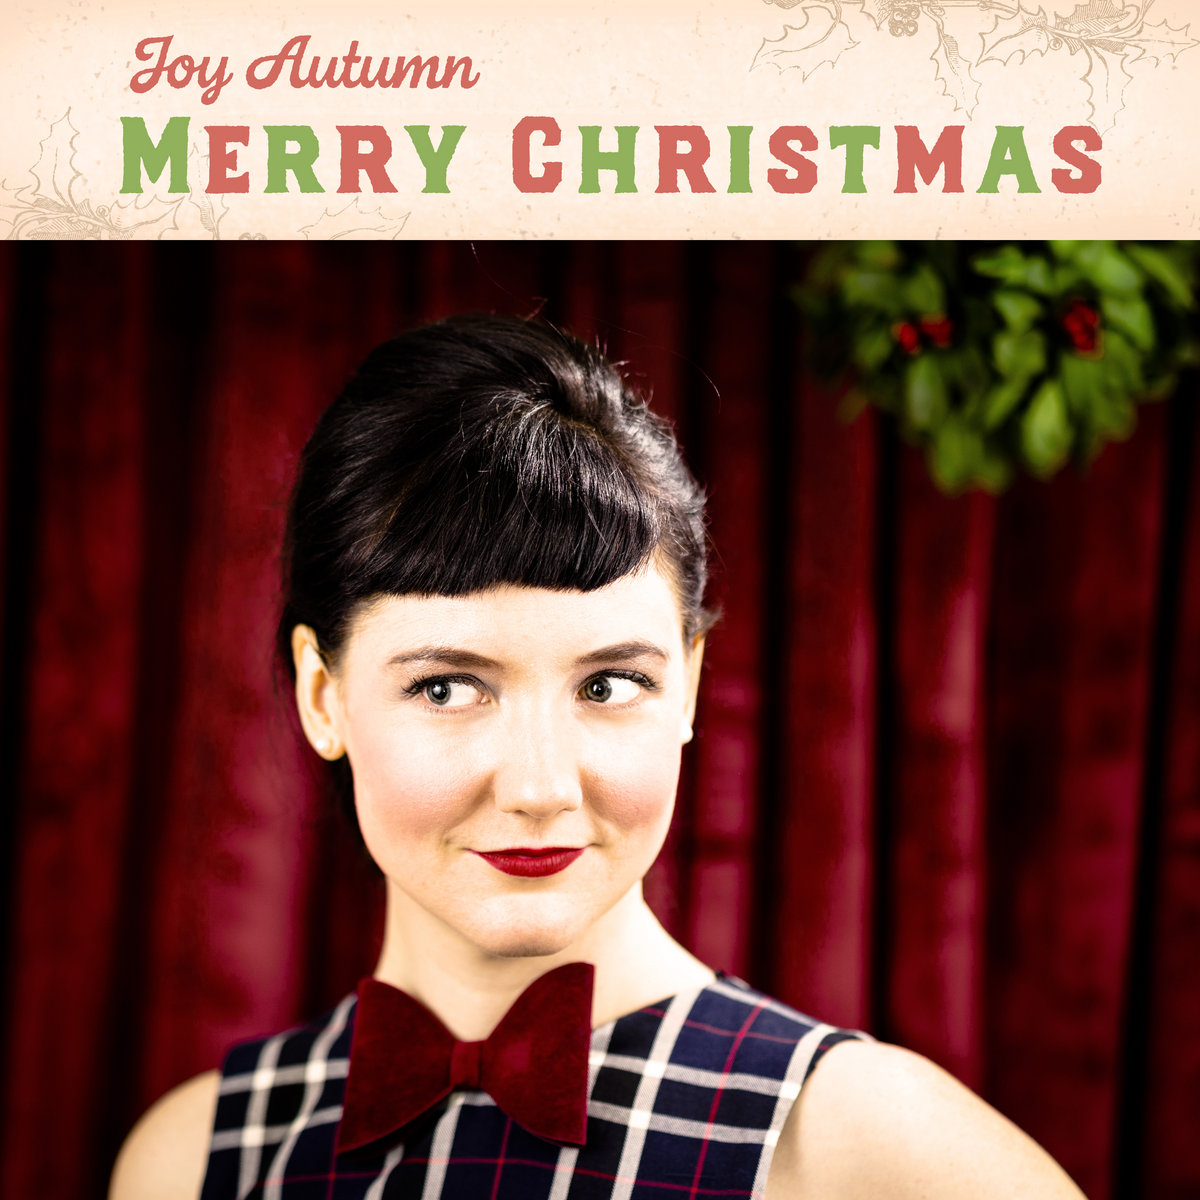 ill be home for christmas from merry christmas by joy autumn - Who Wrote I Ll Be Home For Christmas